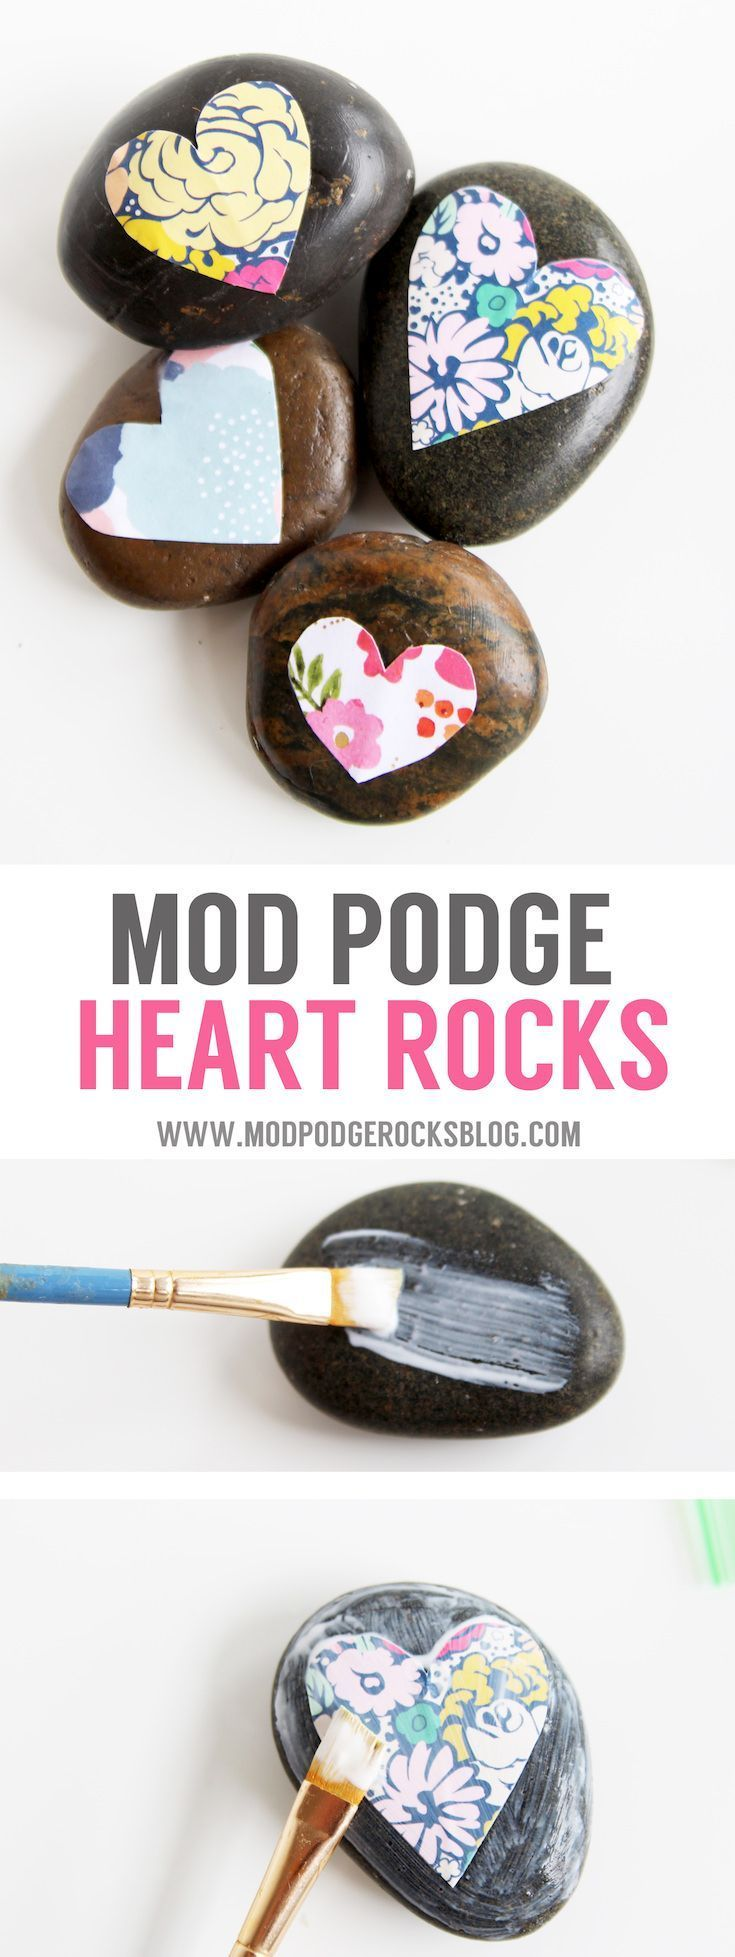 Make some pretty stones for your garden or desktop with a little bit of decoupage. It's easy to Mod Podge on rocks and the results are so pretty! via @modpodgerocks